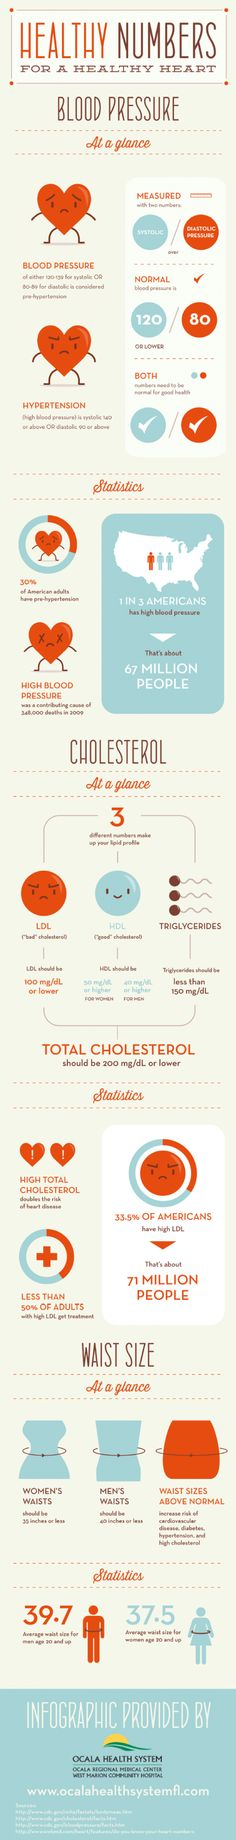 Healthy Numbers for a Healthy Heart Infographic